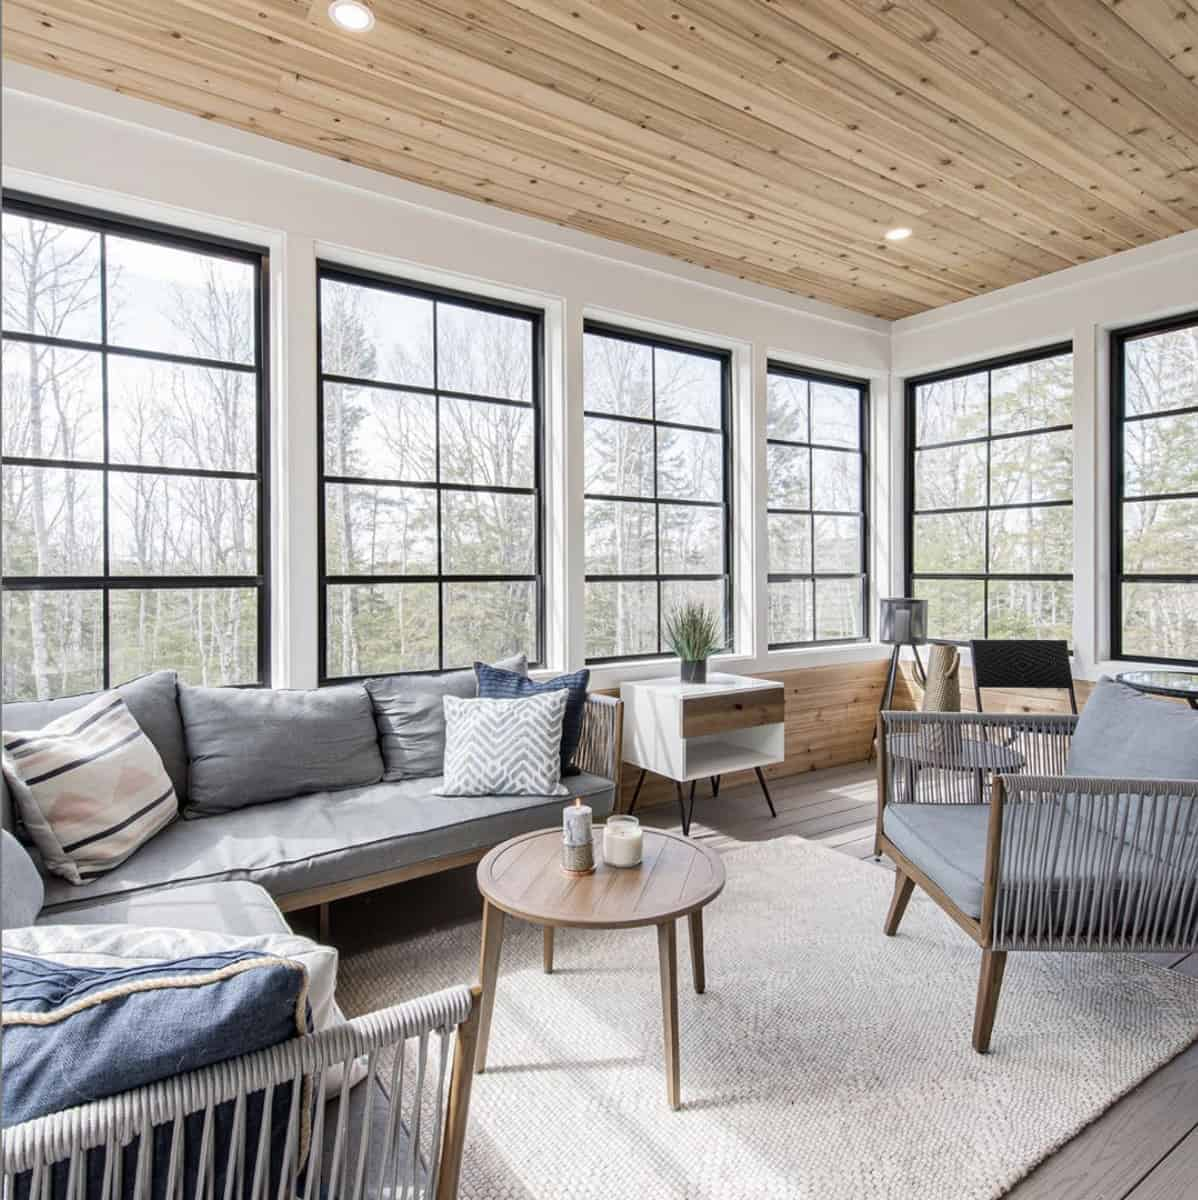 Beautiful porch with wood planked ceilings and black framed windows